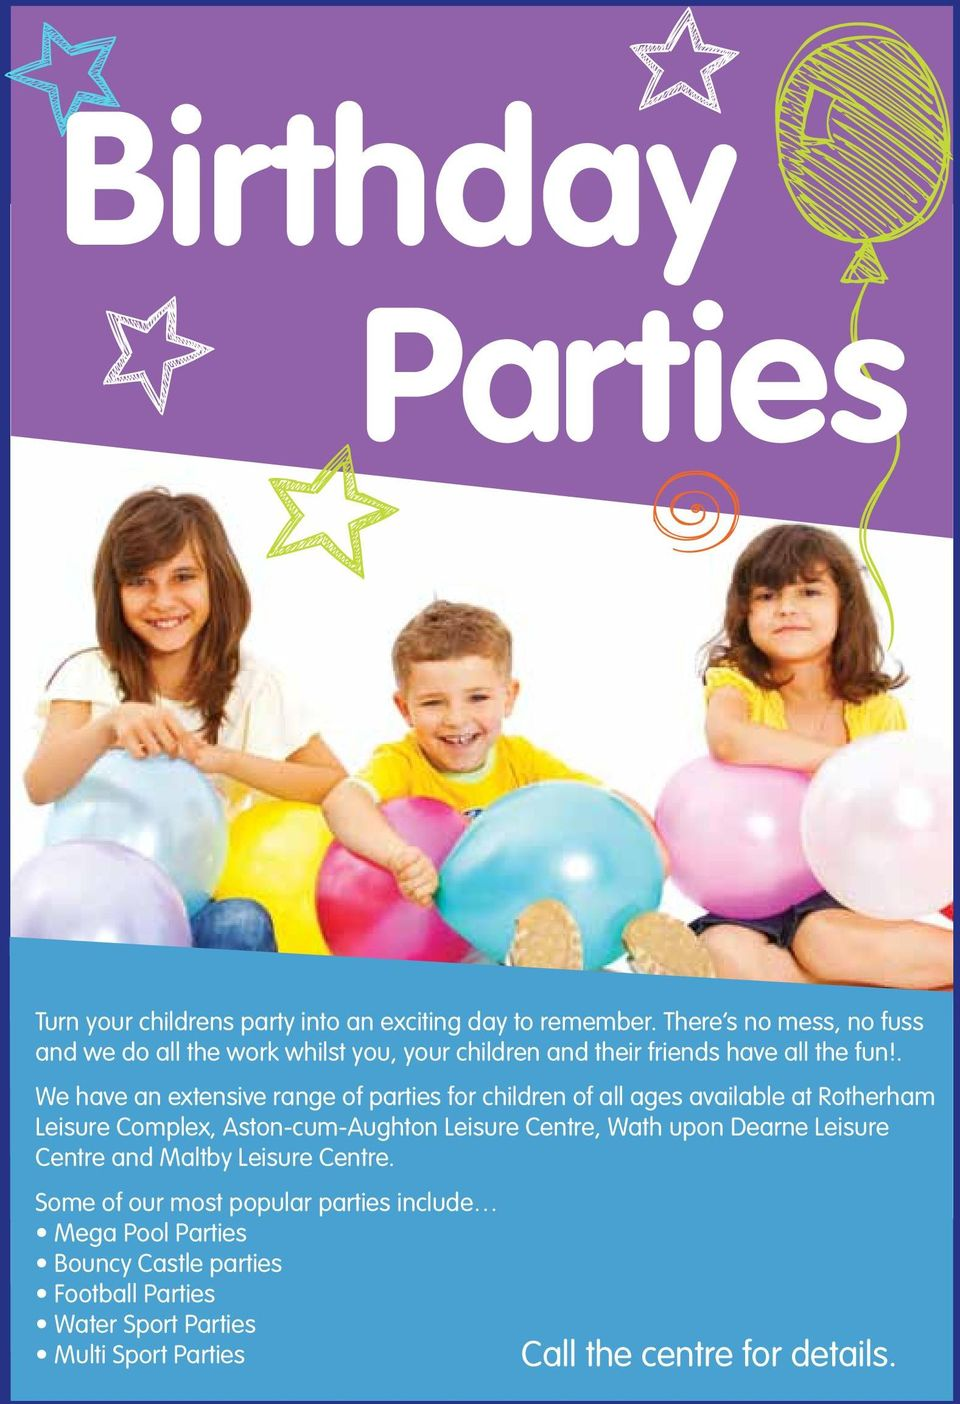 . We have an extensive range of parties for children of all ages available at Rotherham Leisure Complex, Aston-cum-Aughton Leisure